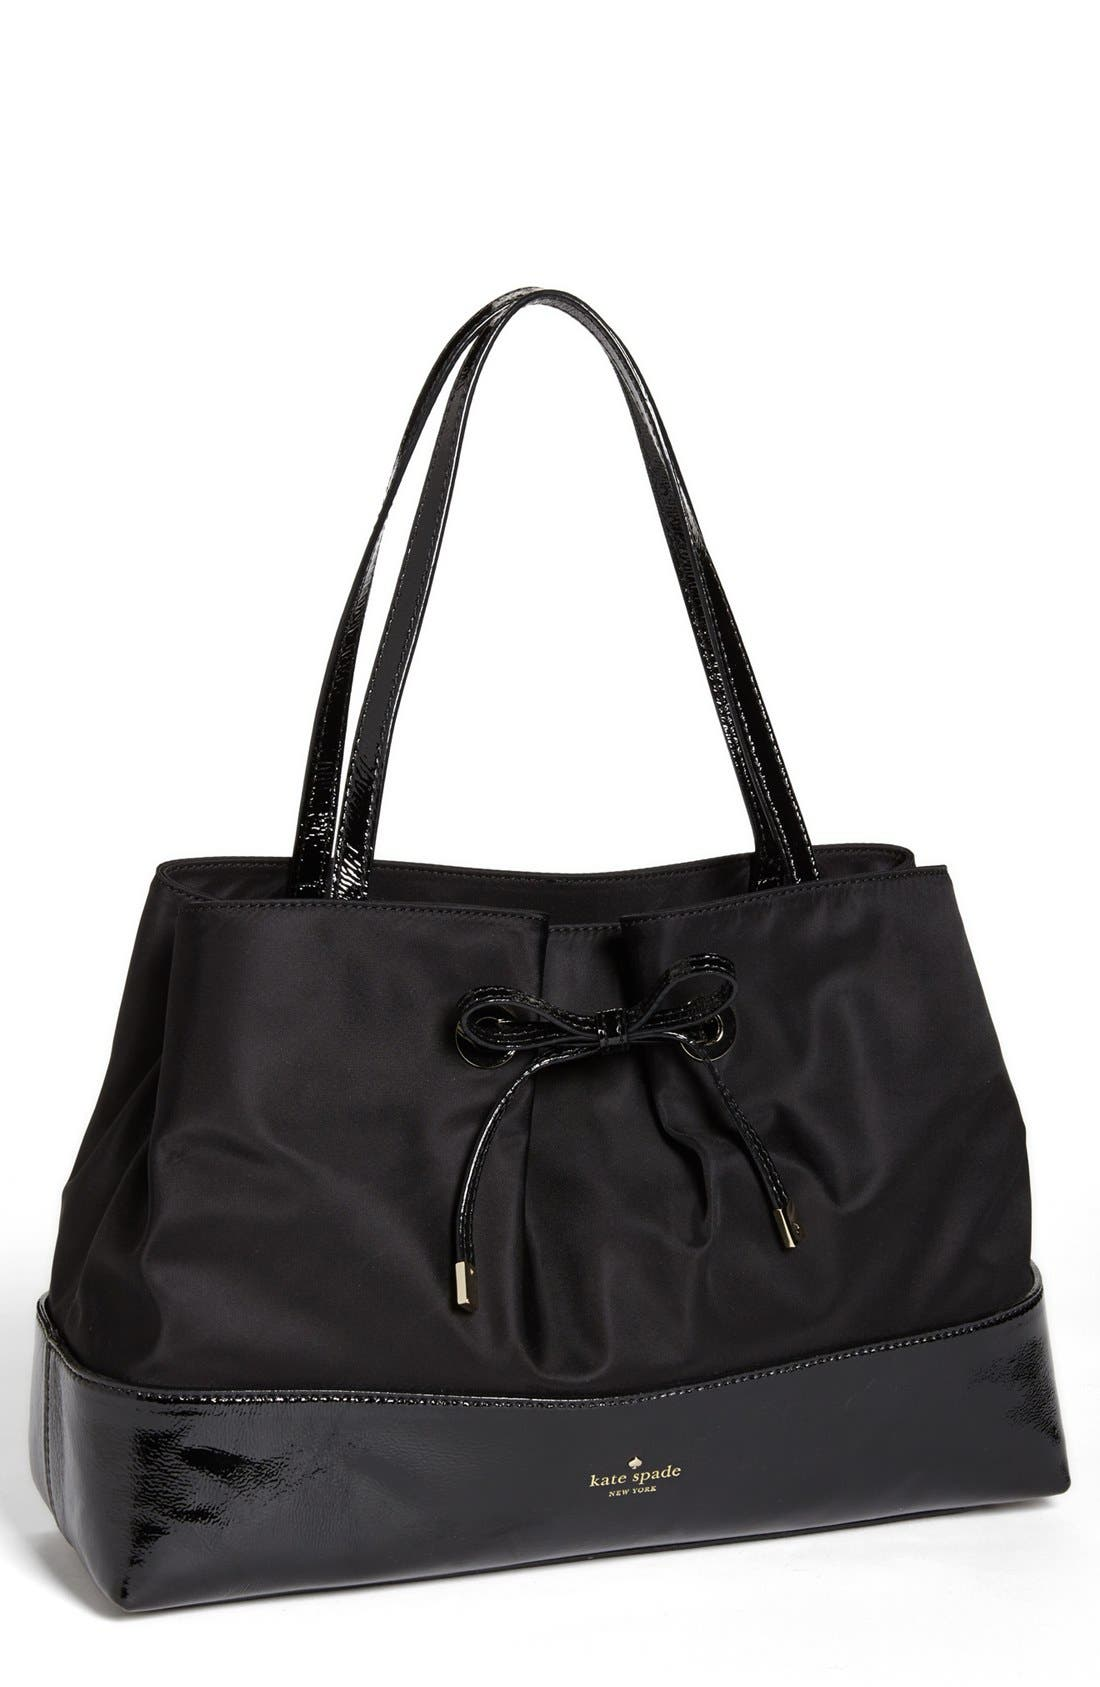 Main Image - kate spade new york 'west valley - maryanne' shoulder bag